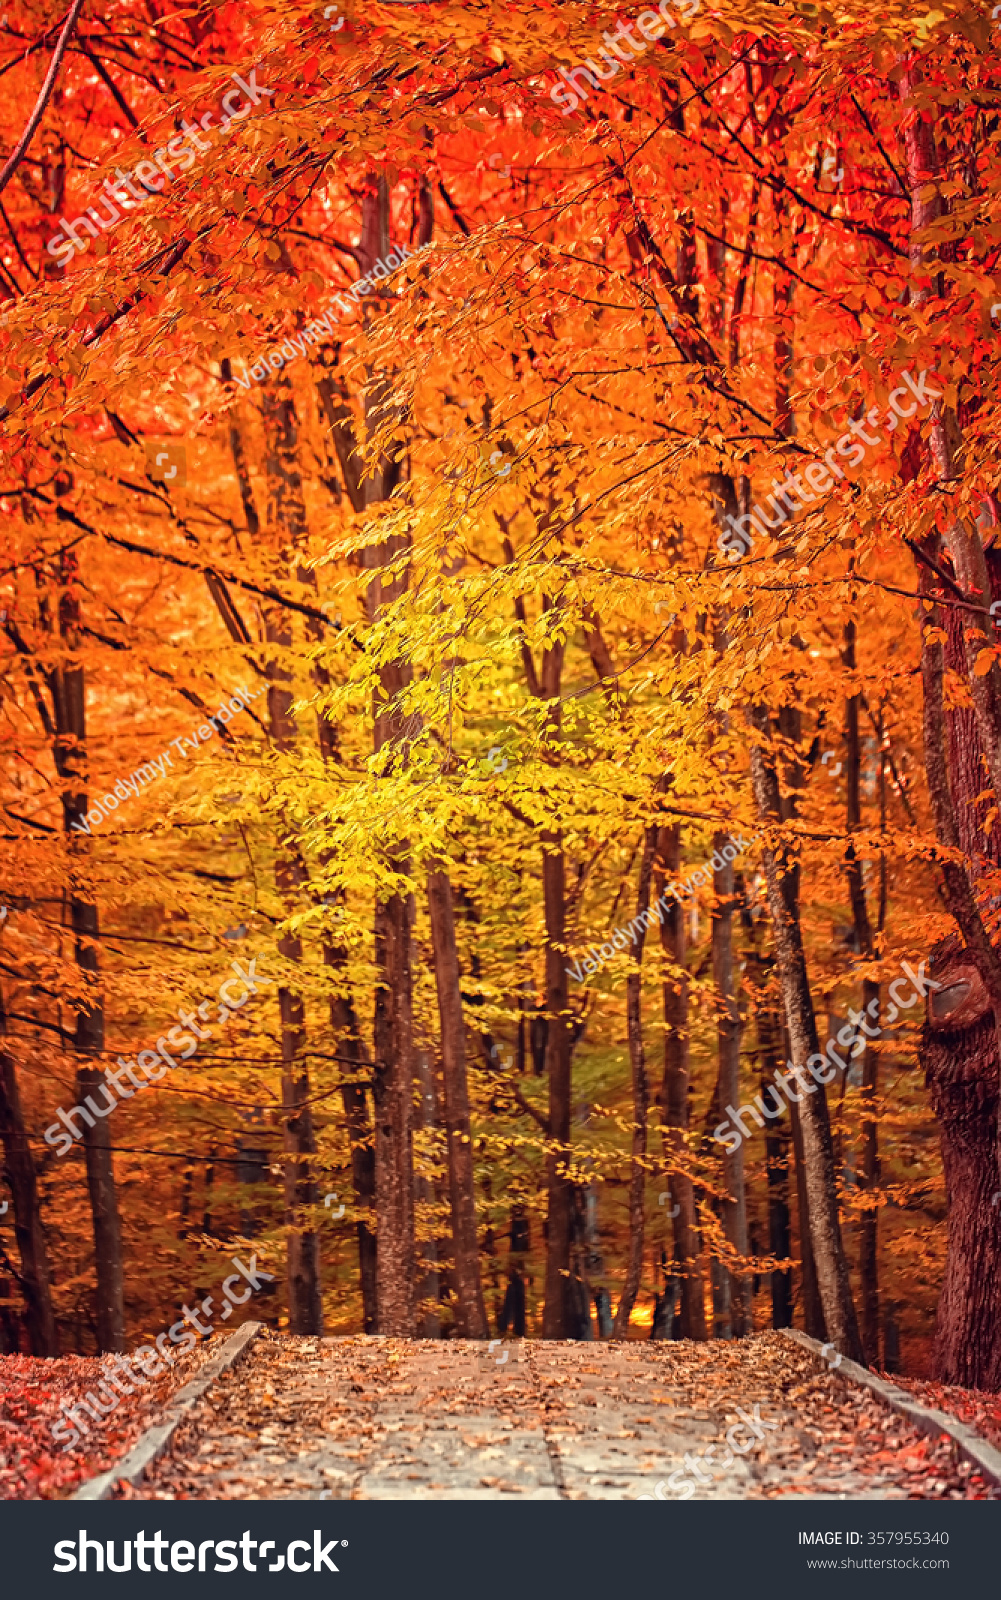 awesome bright autumn scenery - photo #42